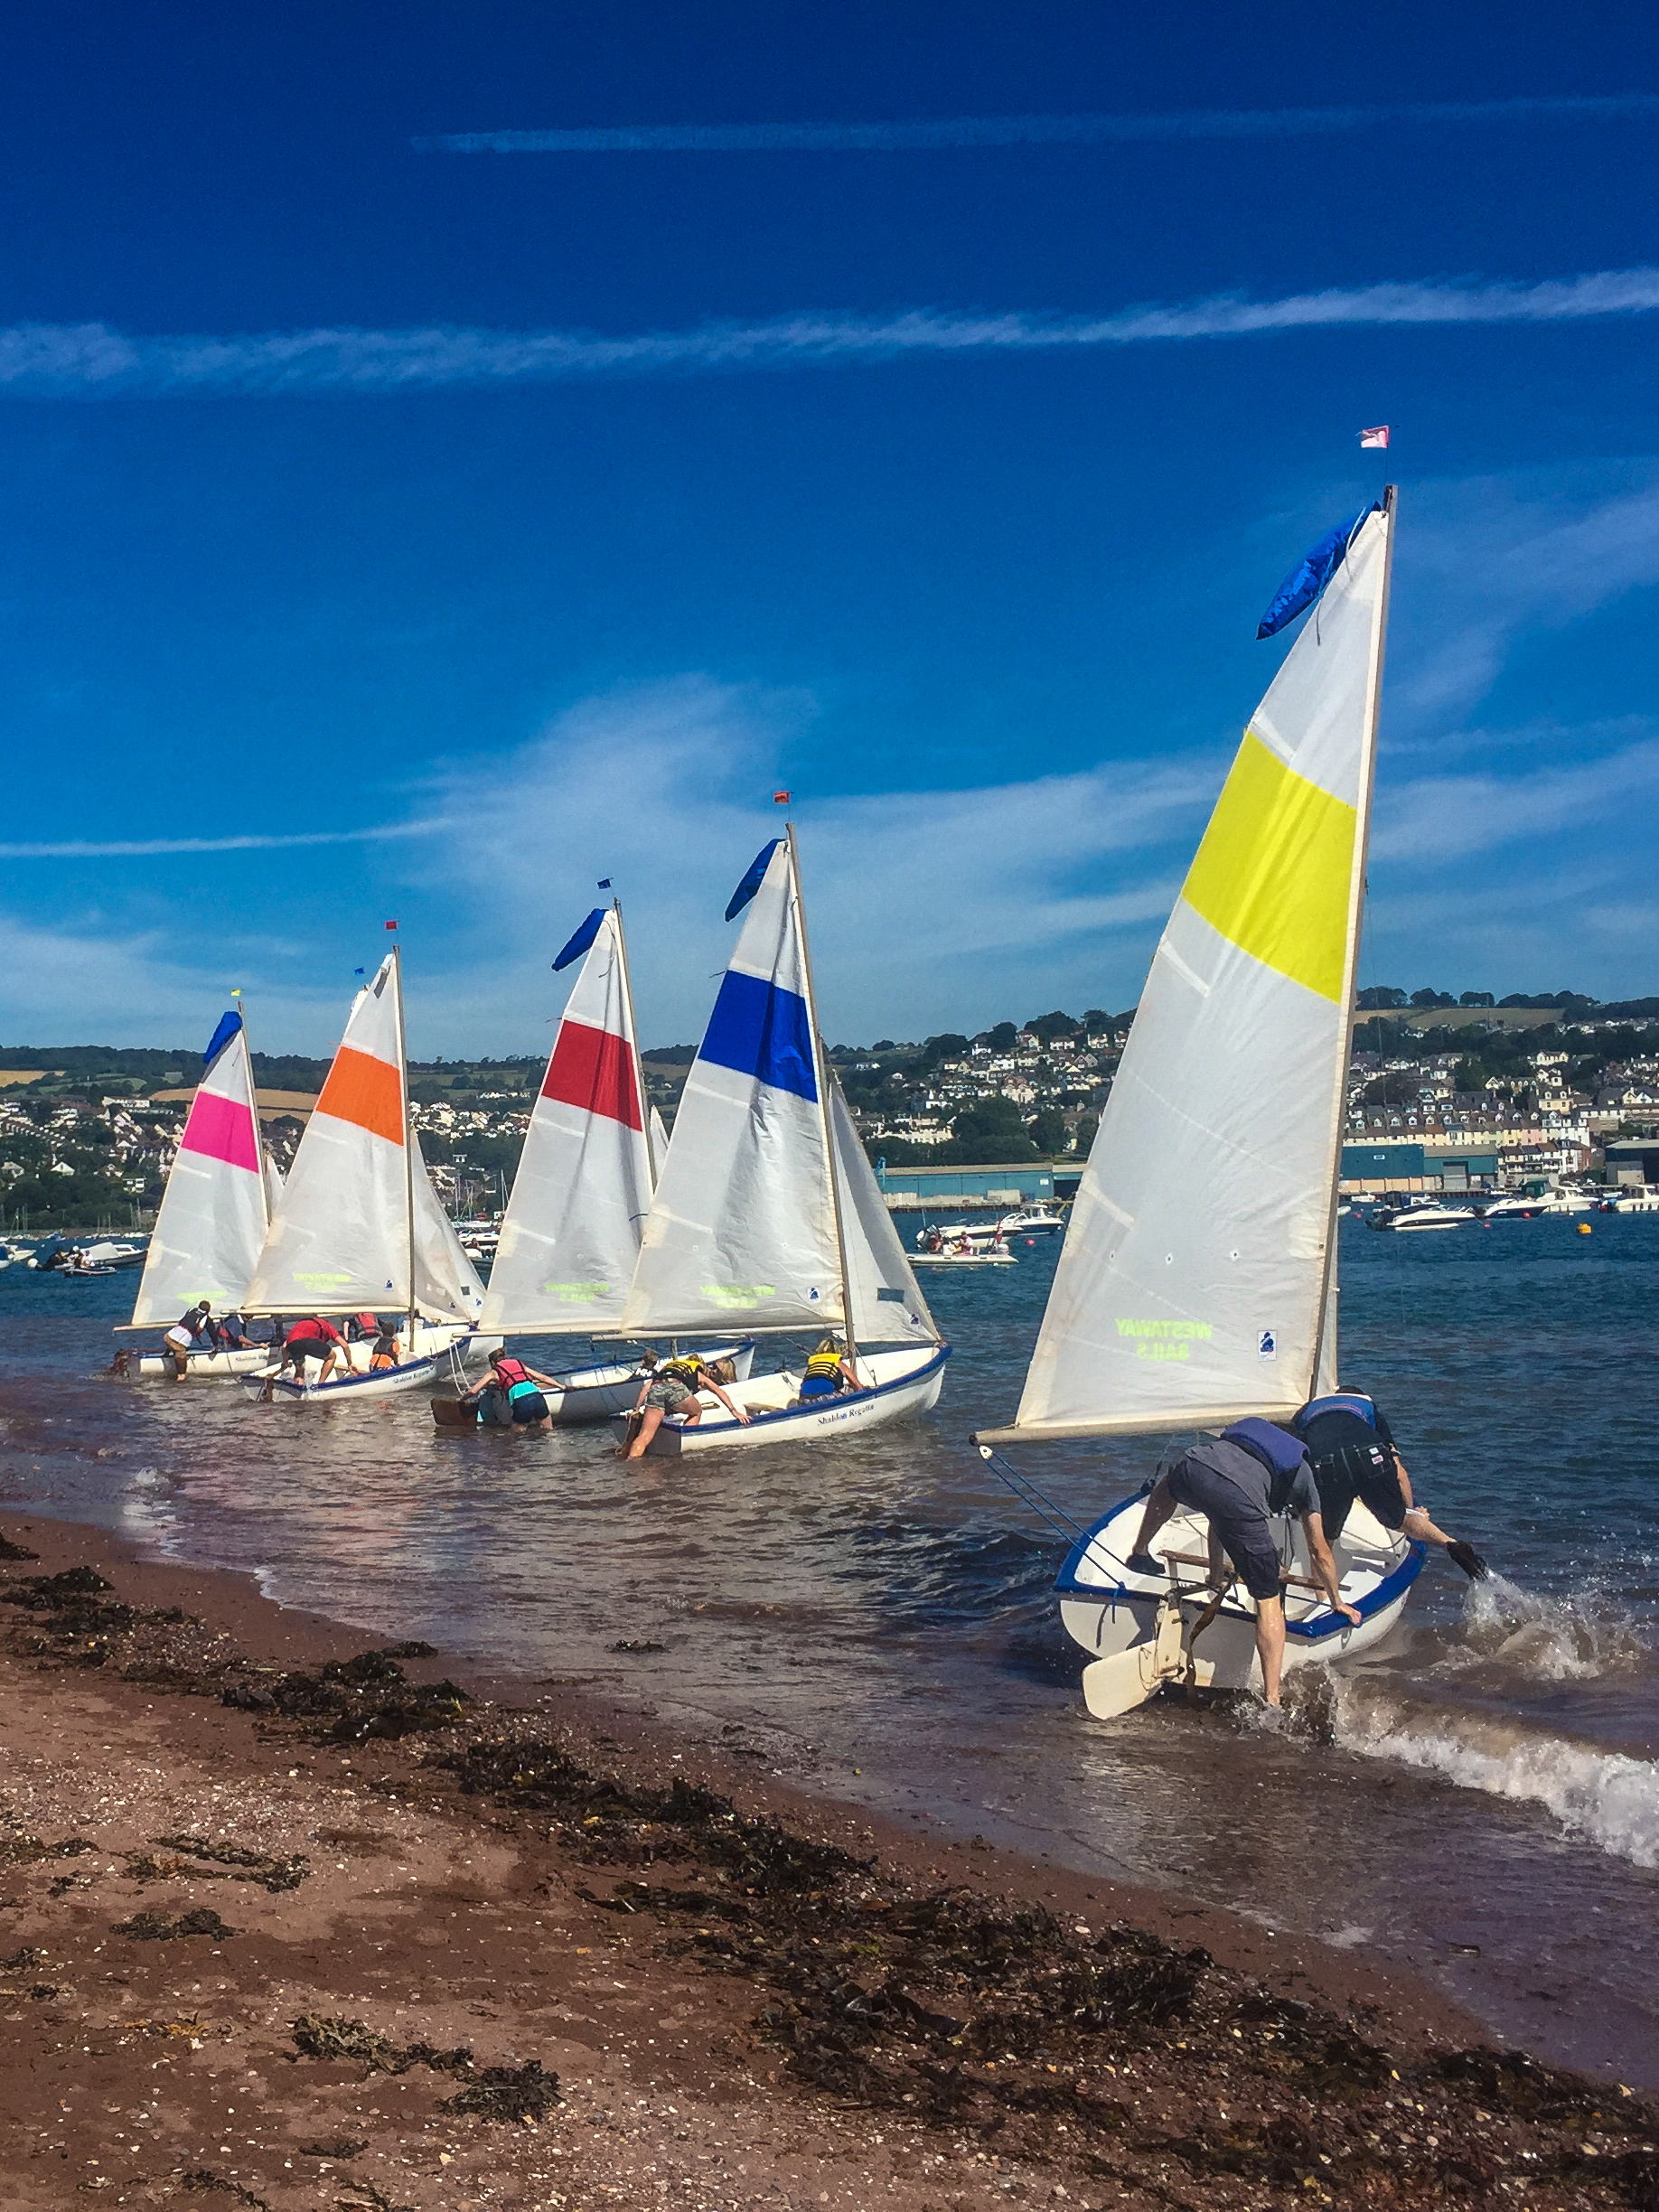 Sailing  - There's a few different sailing races during the week. The Jolly Boat Challenge, Amory Cup are raced in competitors own boats. Entry forms are available from David Bayliss 07831 287887. The races usually happen on the first and last Sunday of Regatta week. The results from two days racing will be combined to give the overall winners.The Otter sailing takes place over two mornings or afternoons (tide dependent) in our own fleet of six Otter sailing dinghies. Boats are allocated for each race.